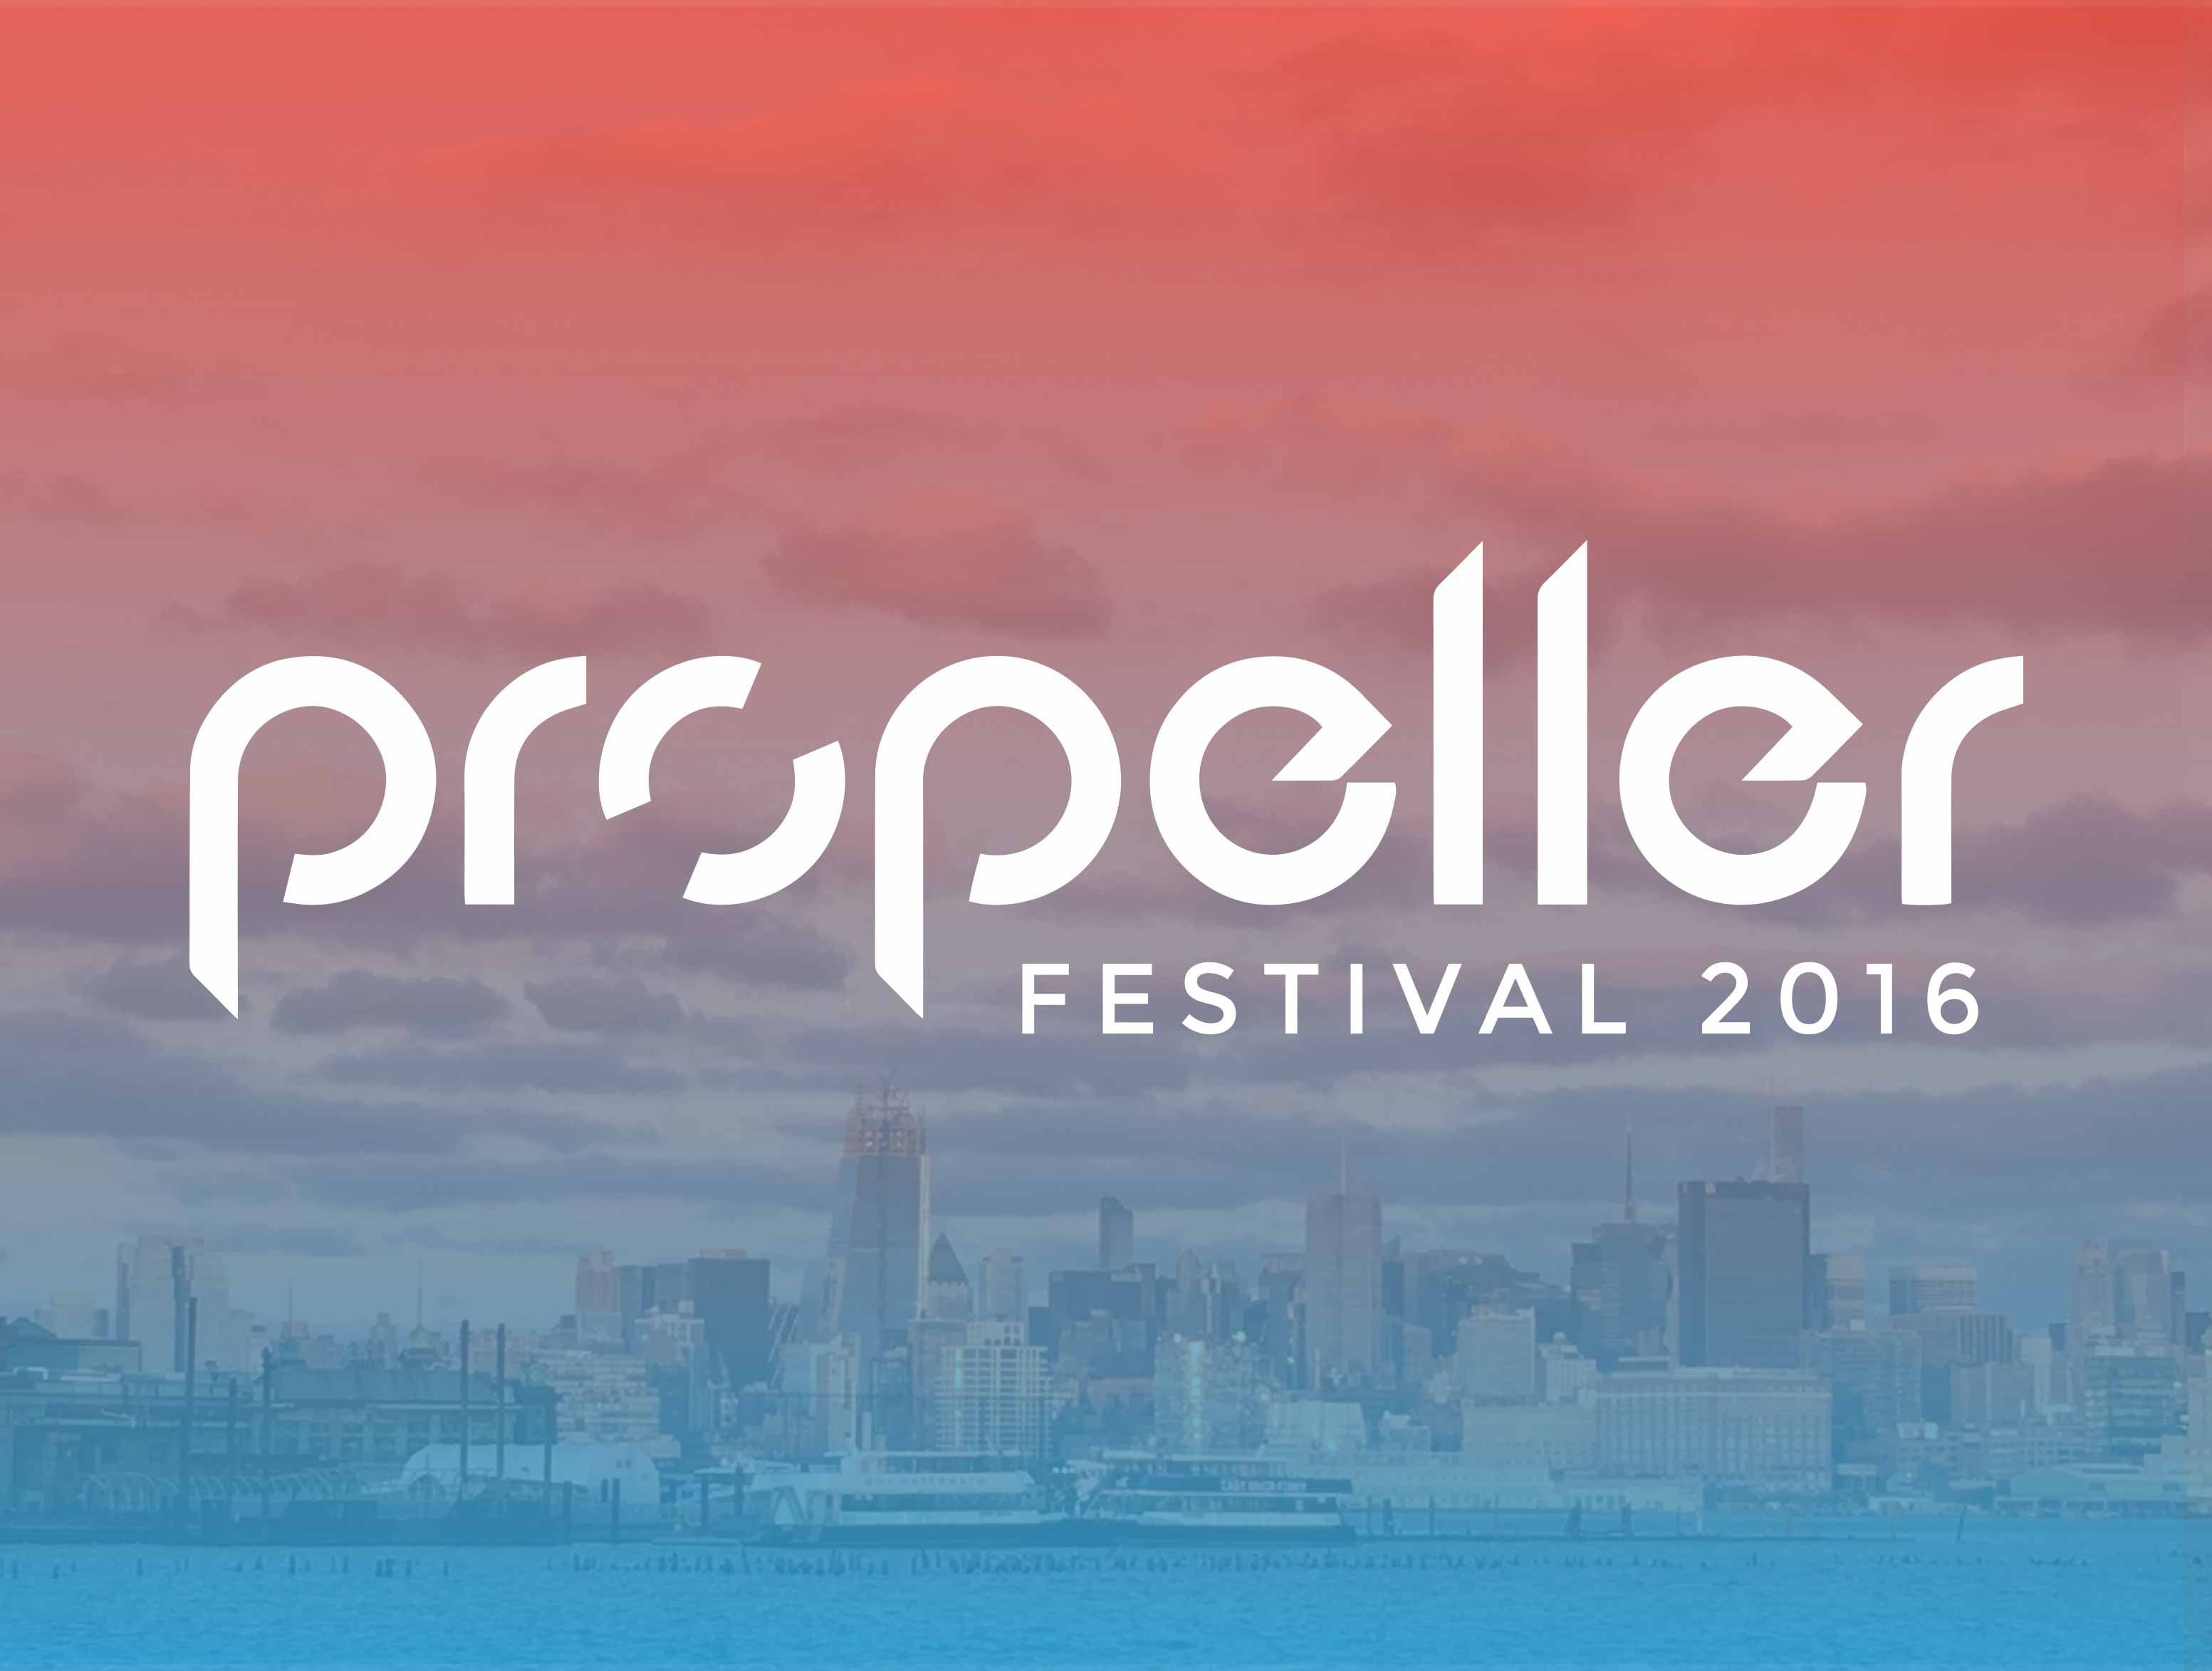 Propeller festival logo over a photo of the skyline of Hoboken.